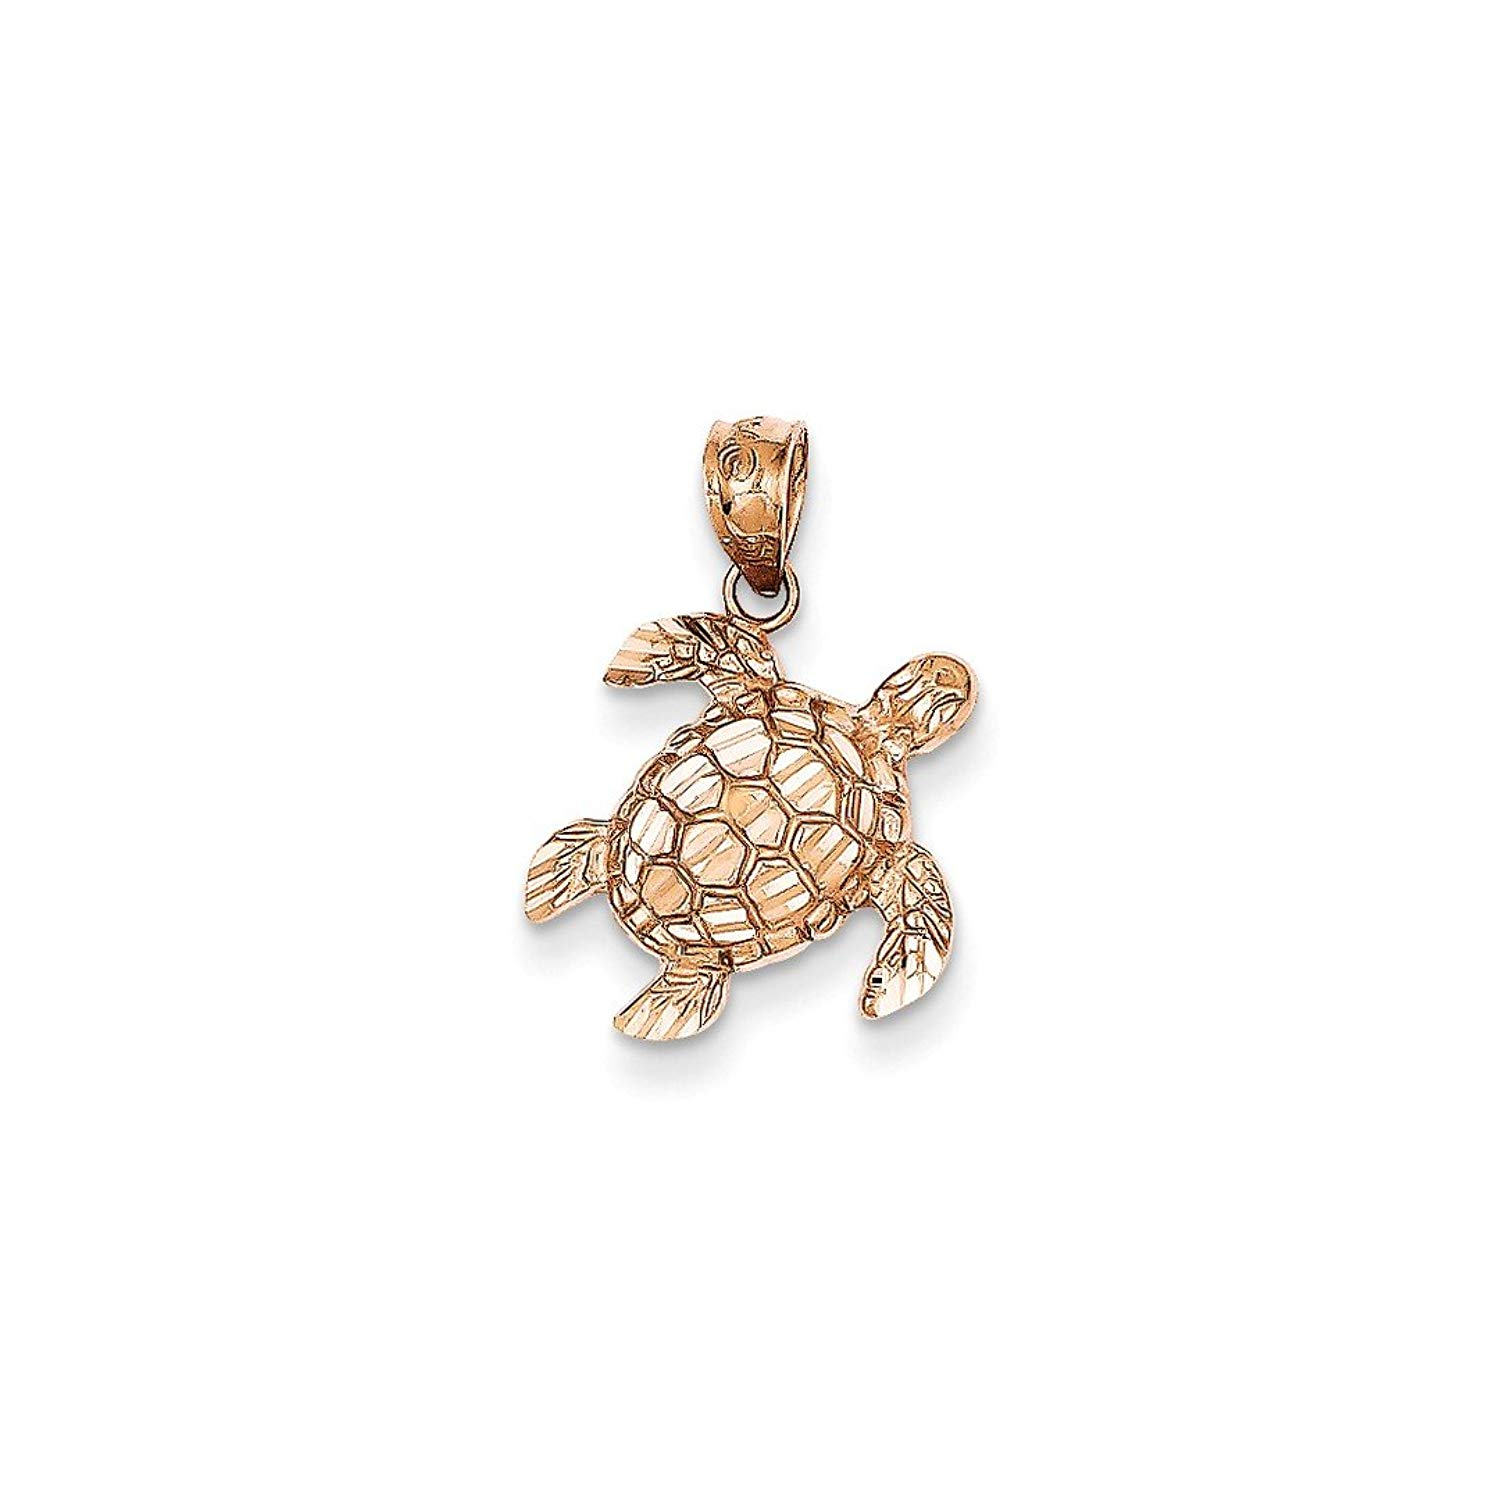 ICE CARATS 14kt Rose Gold Turtle Pendant Charm Necklace Sea Life Fine Jewelry Ideal Gifts For Women Gift Set From Heart